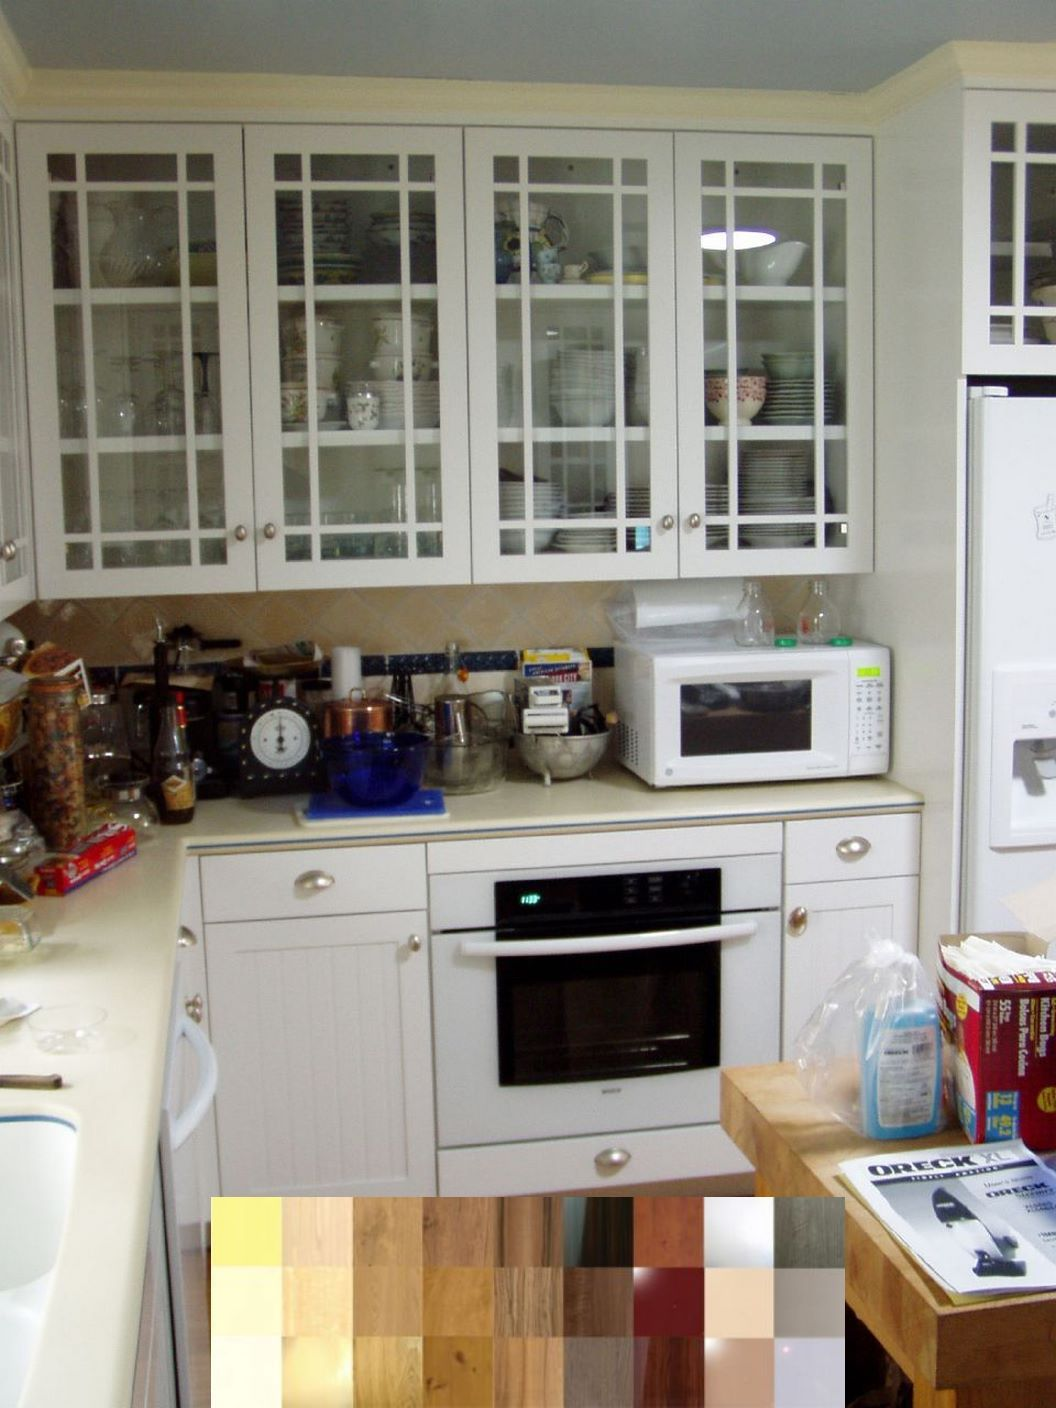 Pin On Diy Kitchen Cabinet Ideas